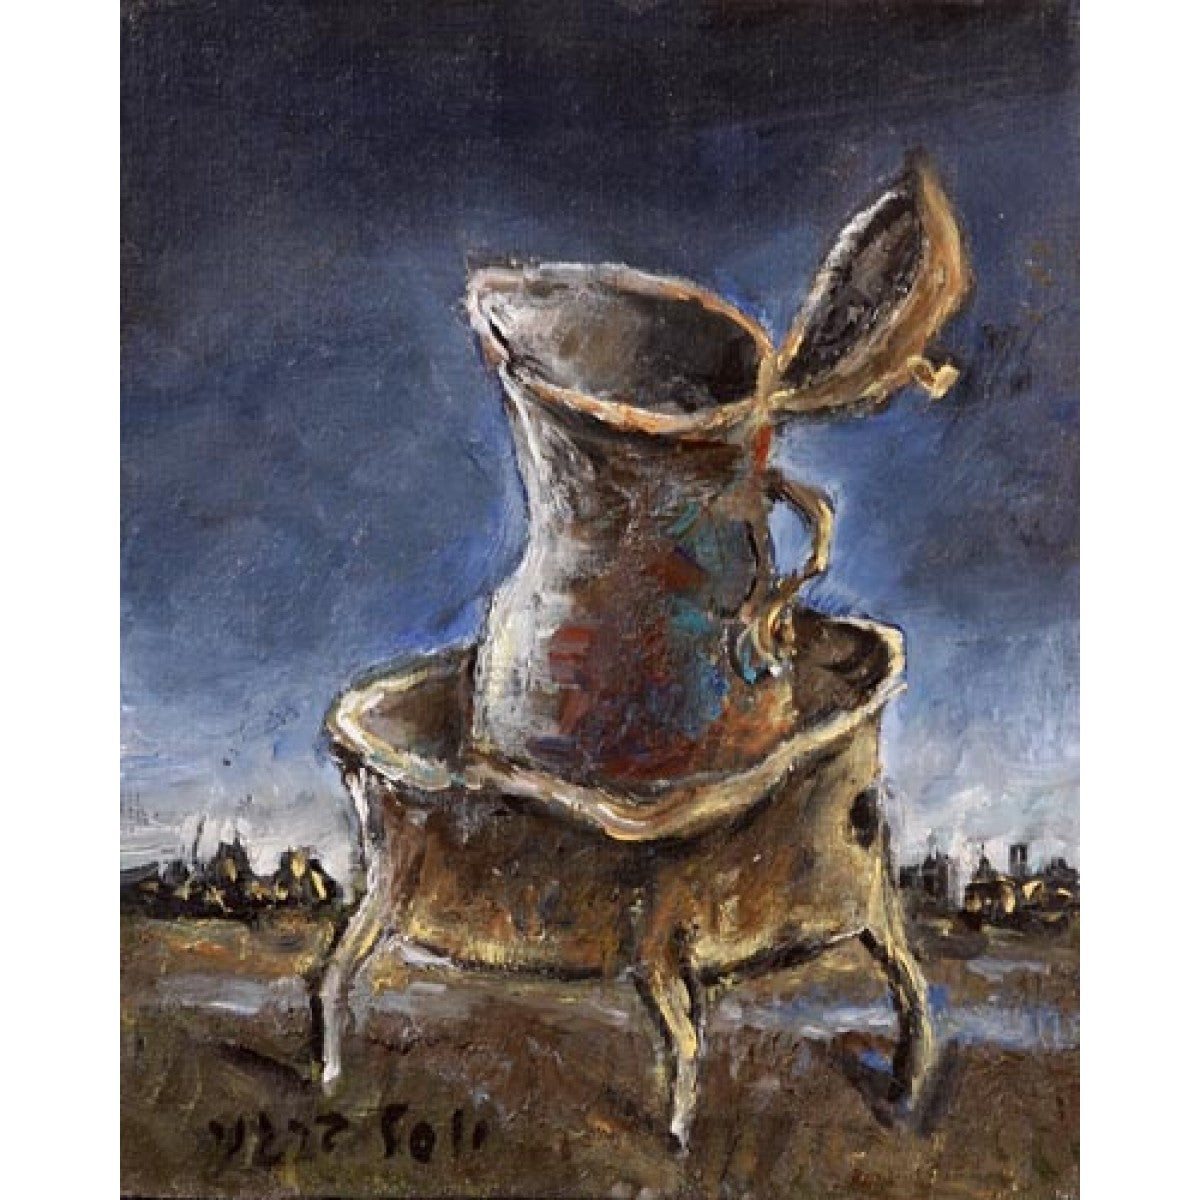 The Jug by Yosl Bergner